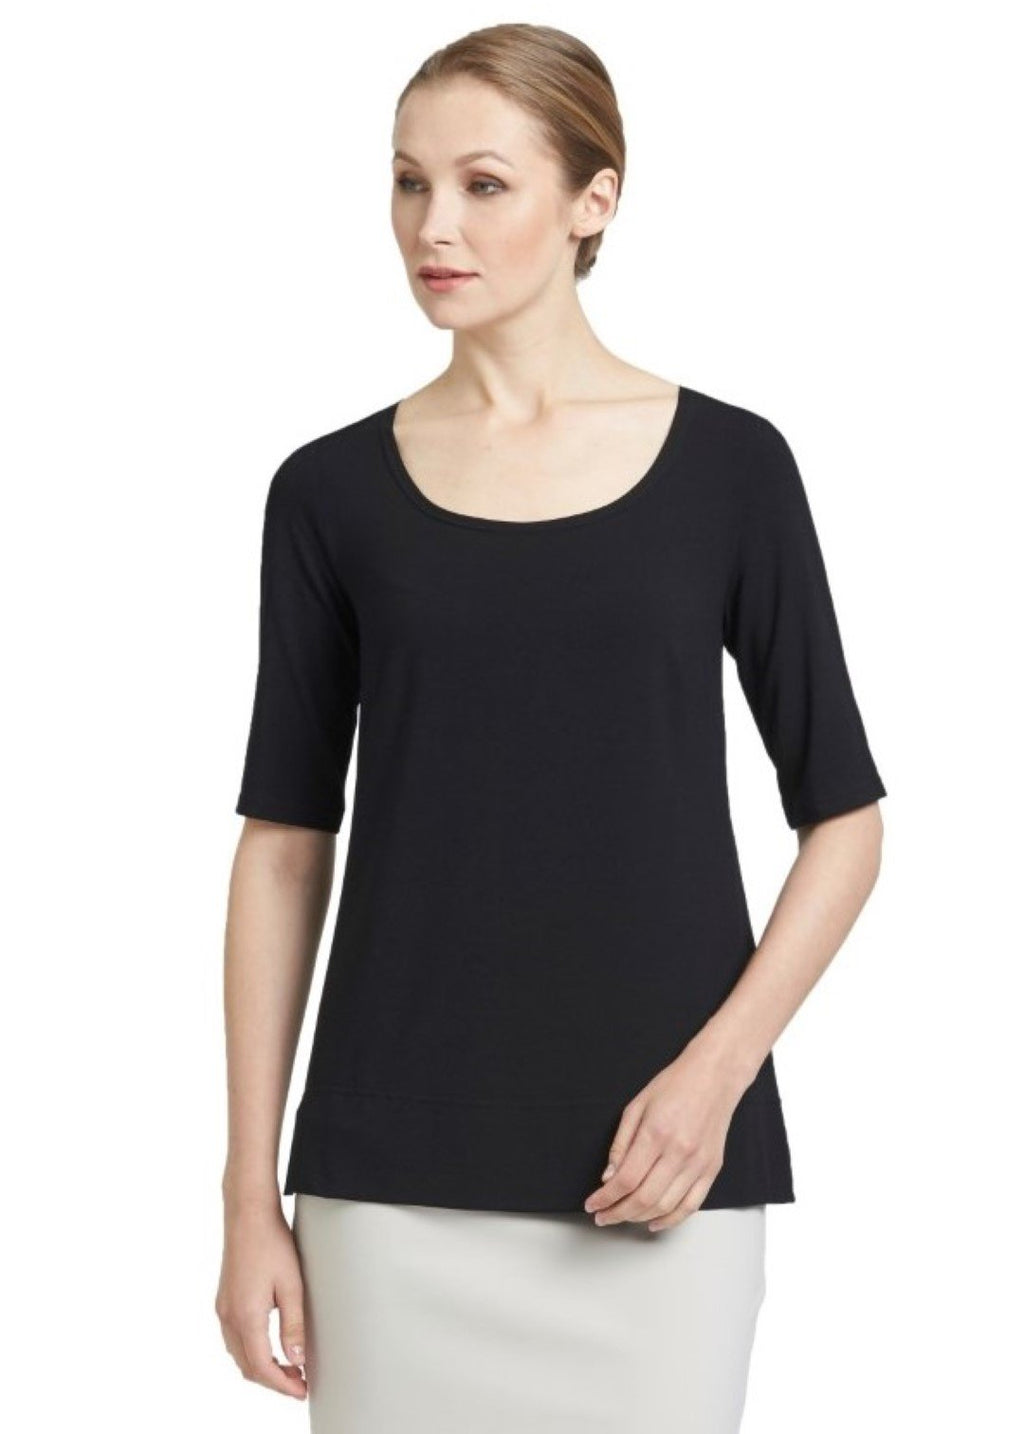 PAULA RYAN ESSENTIALS Easy Fit Half Sleeve Scoop Neck Top - MicroModal 6833-Black-S Top